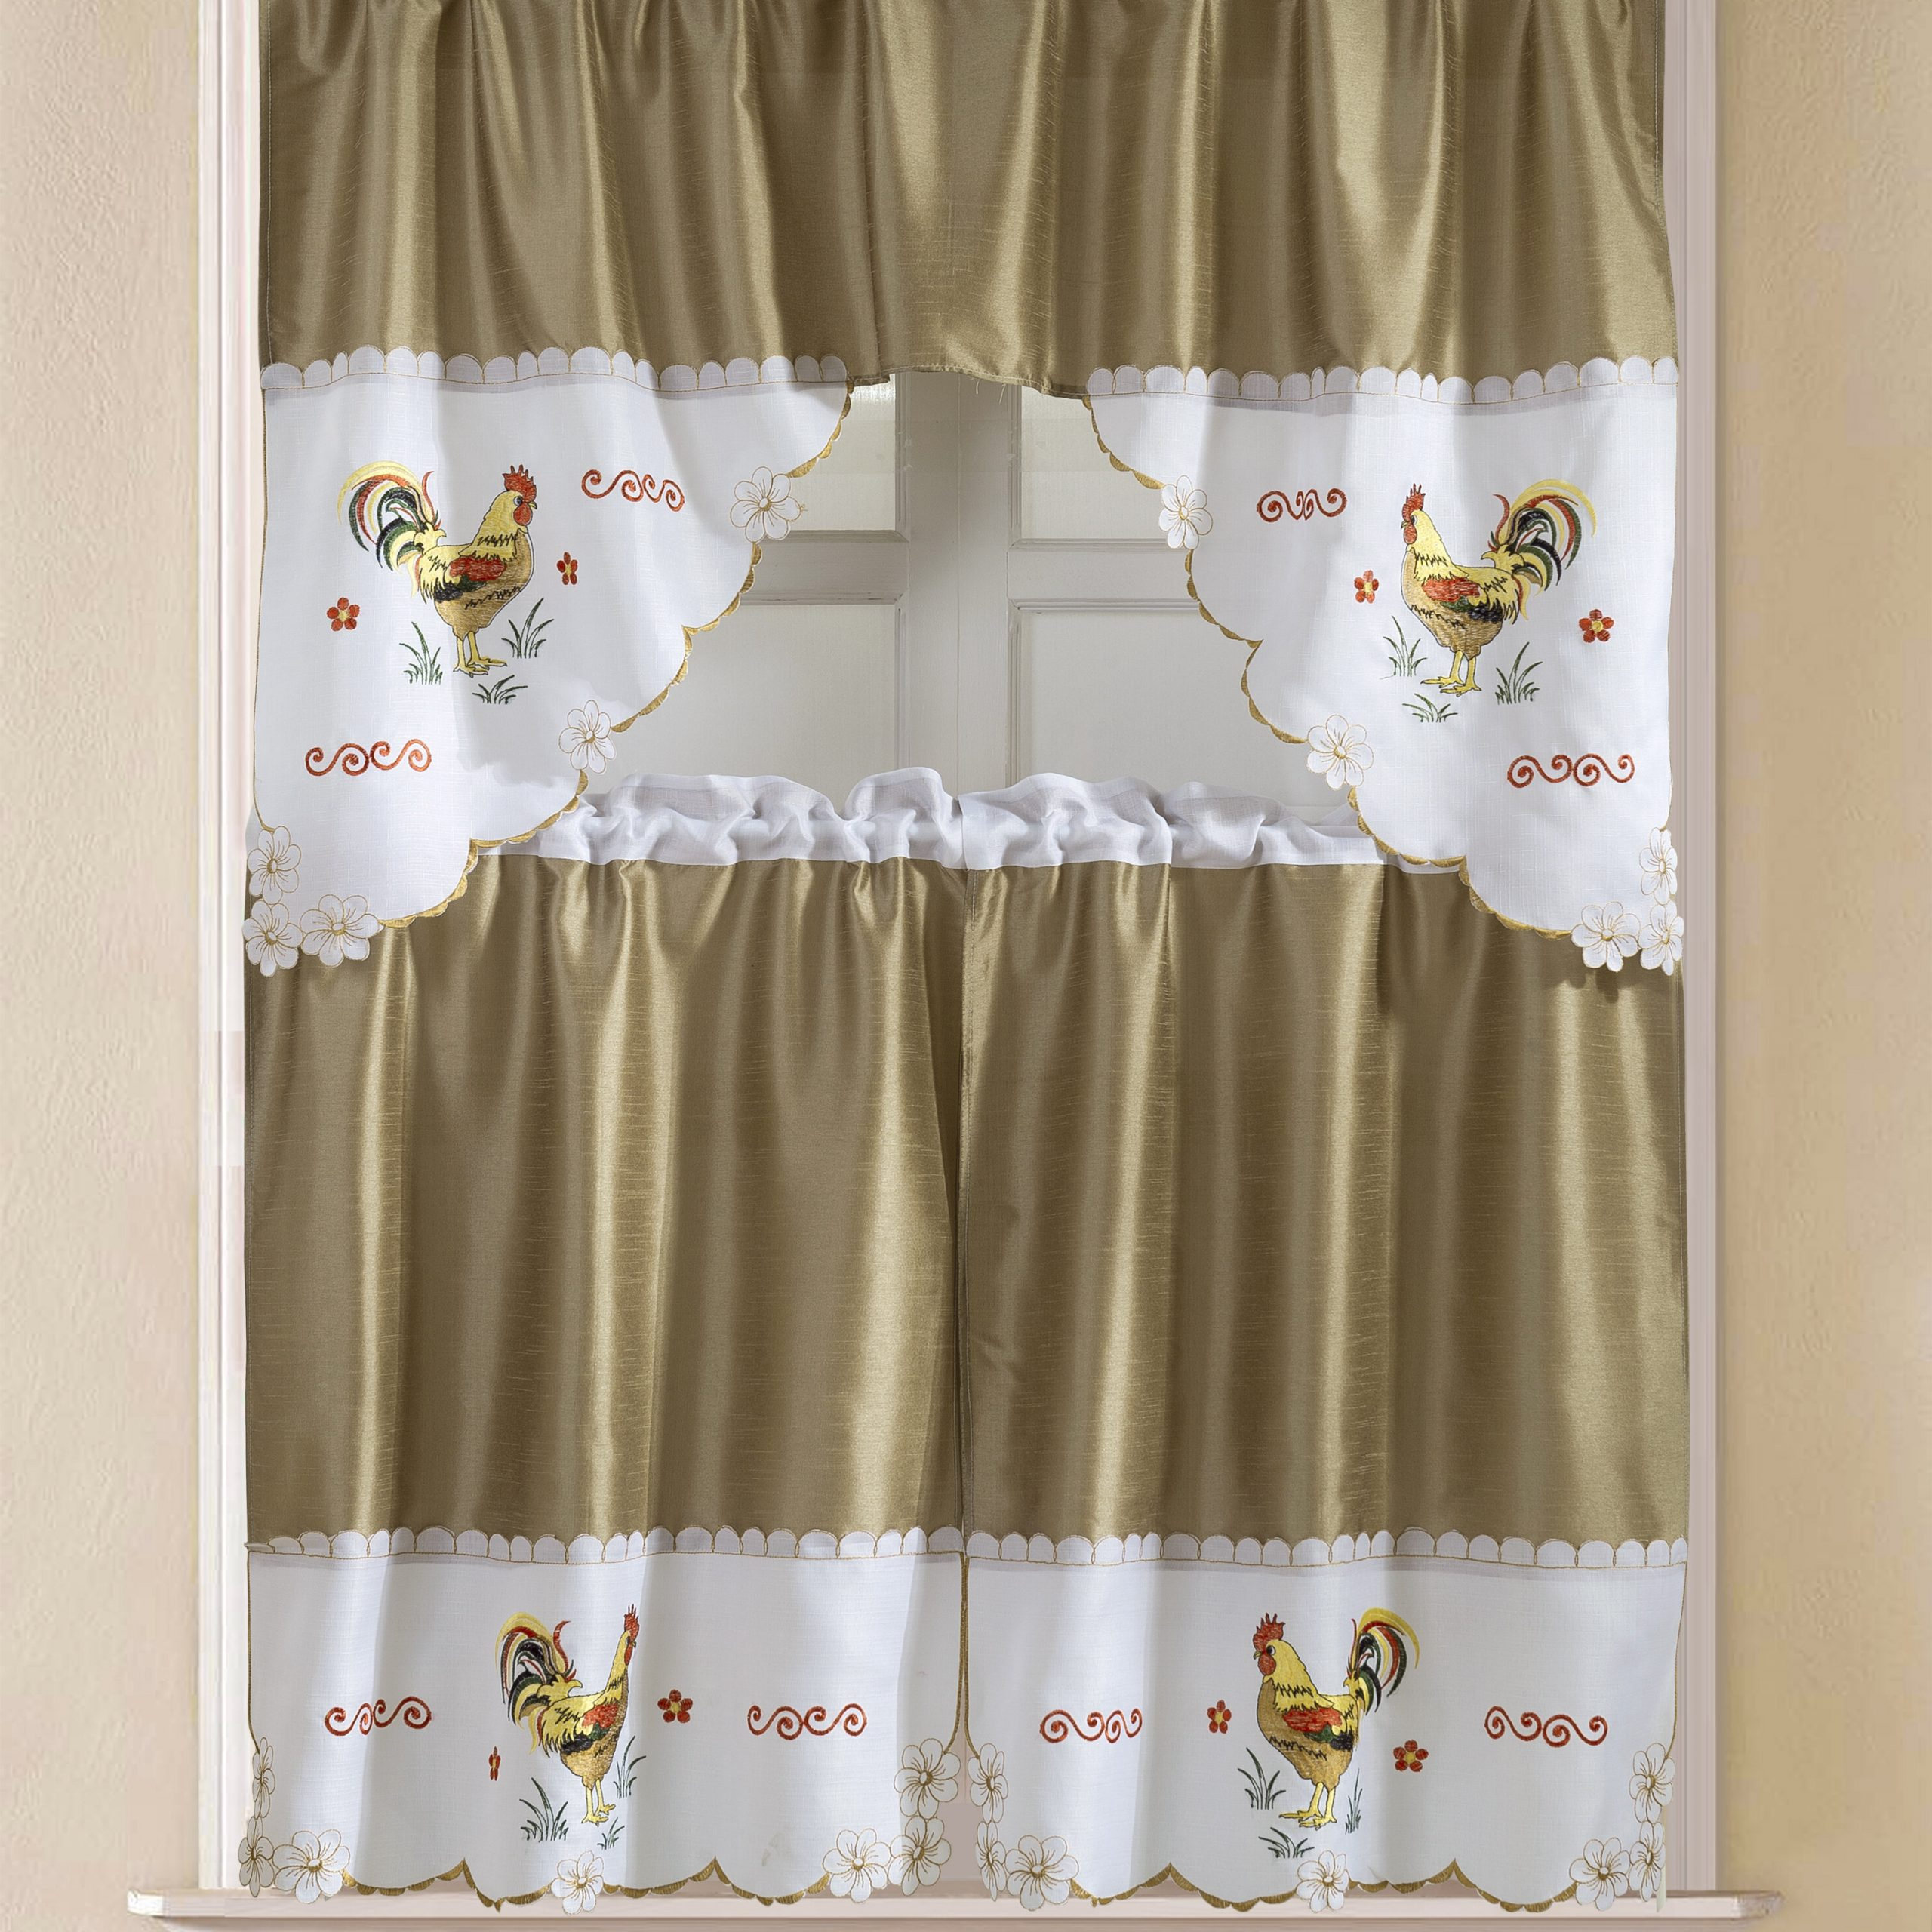 """Sorrentino Faux Silk 3 Piece 60"""" Kitchen Curtain Set With Regard To Current Faux Silk 3 Piece Kitchen Curtain Sets (View 17 of 20)"""